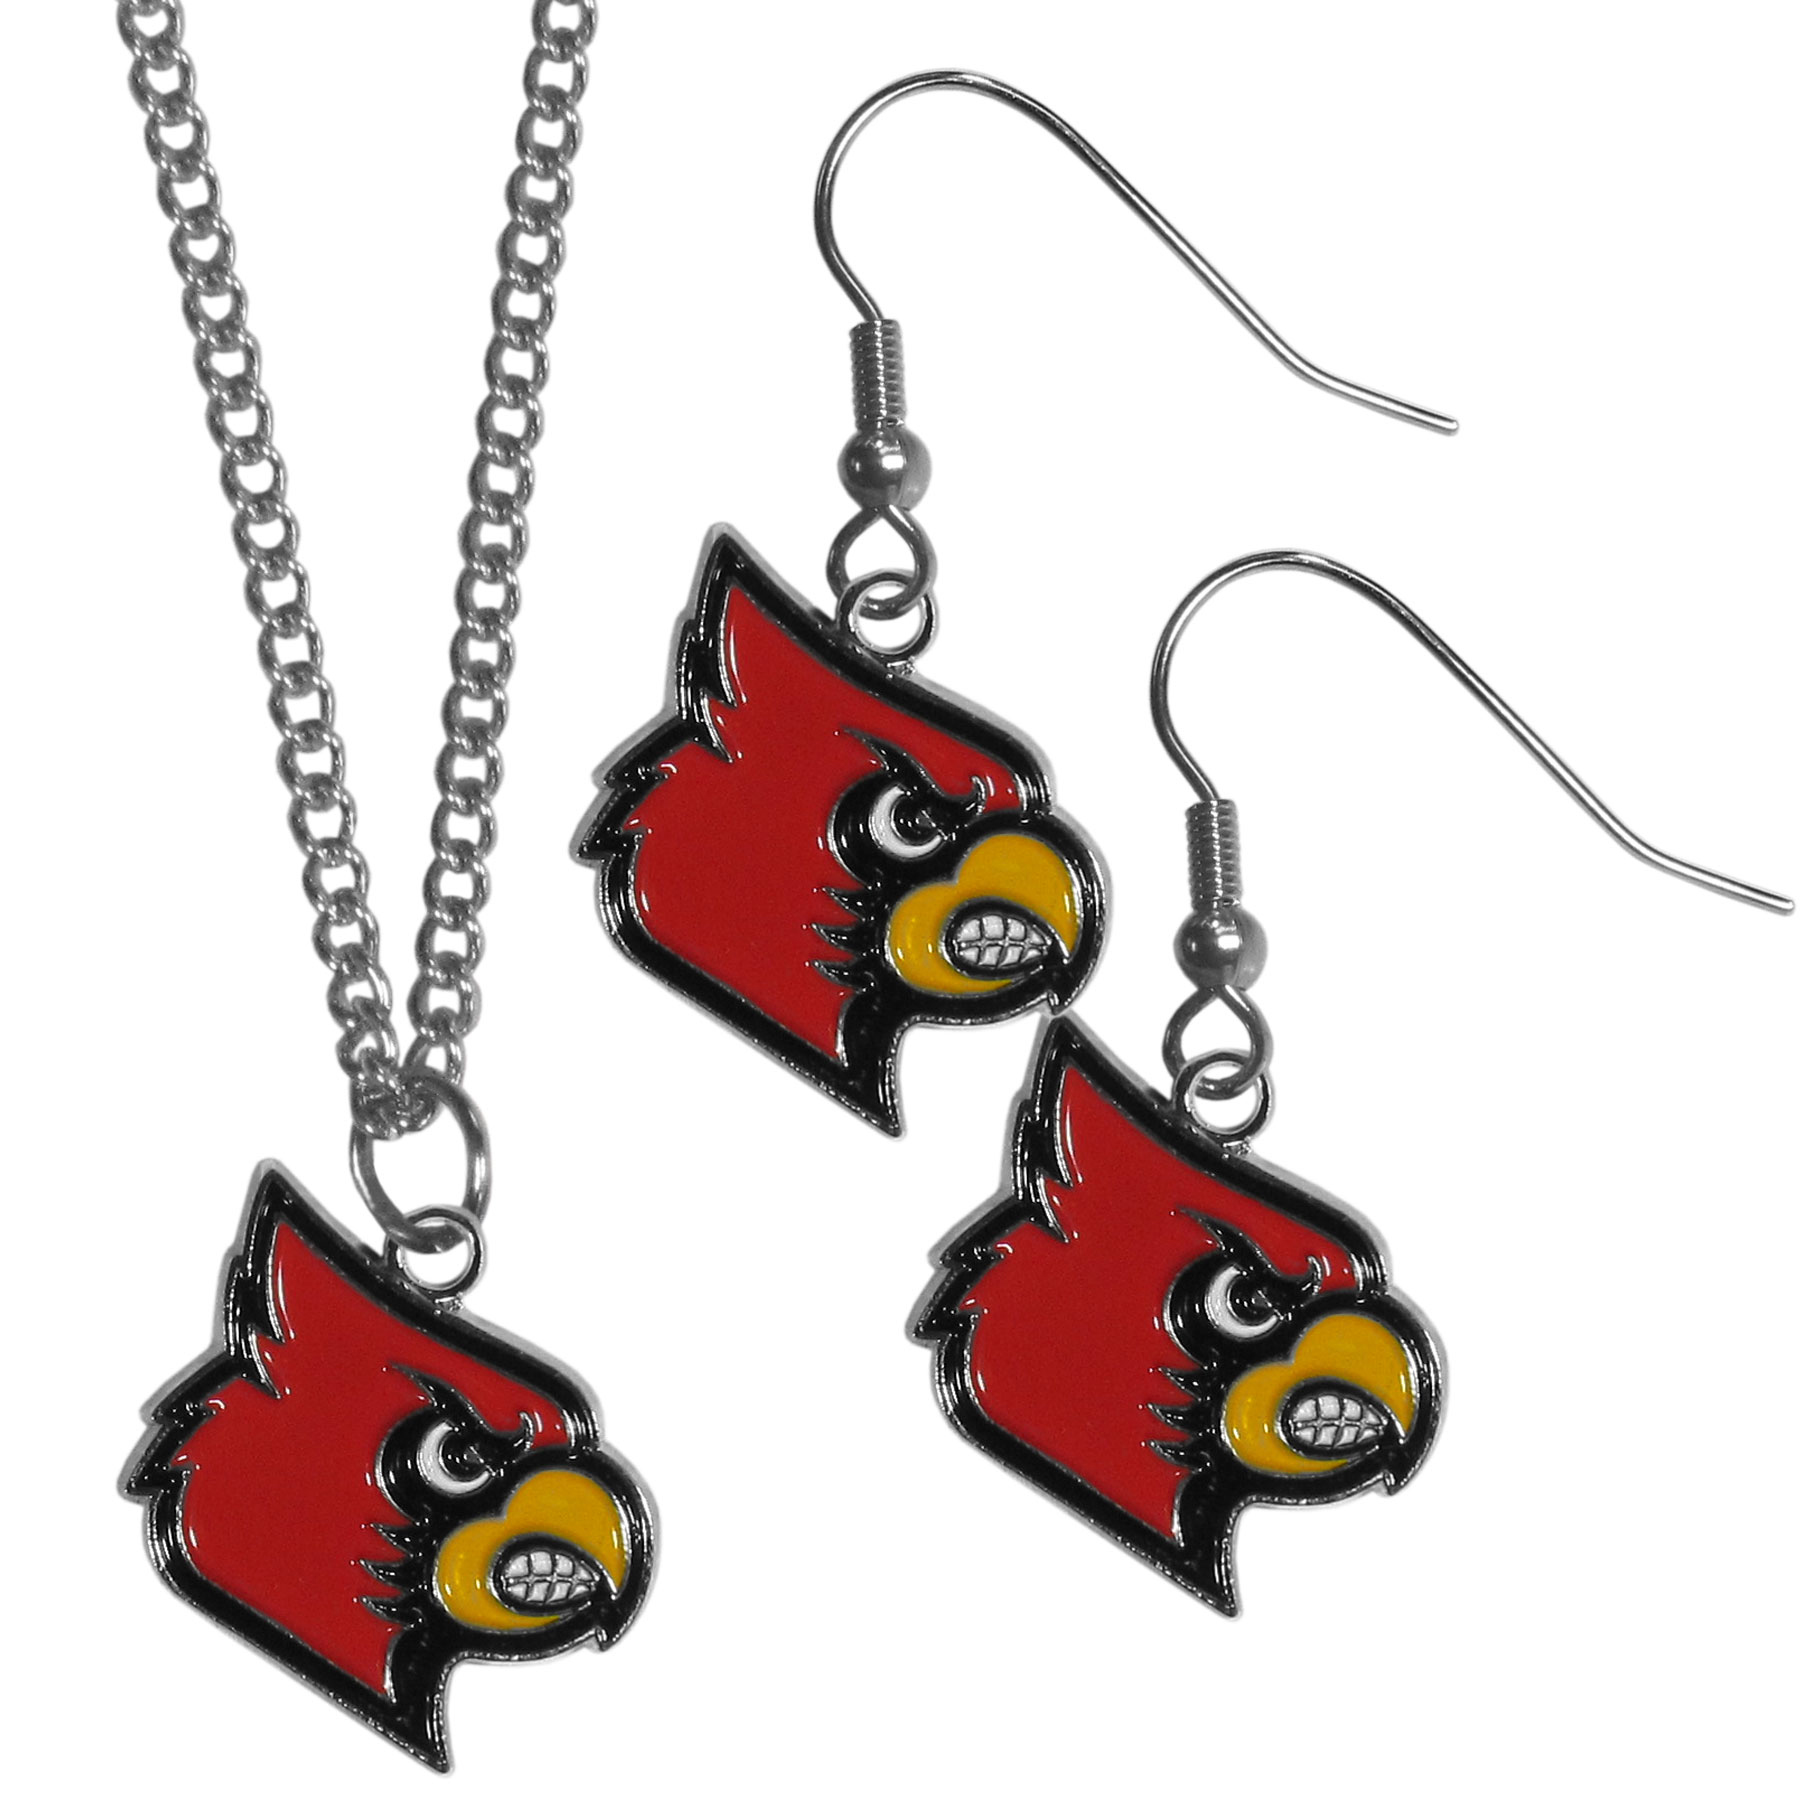 Louisville Cardinals Dangle Earrings and Chain Necklace Set - This classic jewelry set contains are most popular Louisville Cardinals dangle earrings and 22 inch chain necklace. The trendy, dangle earrings are lightweight and feature a fully cast metal team charm with enameled team colors. The matching necklace completes this fashion forward combo and is a spirited set that is perfect for game day but nice enough for everyday.